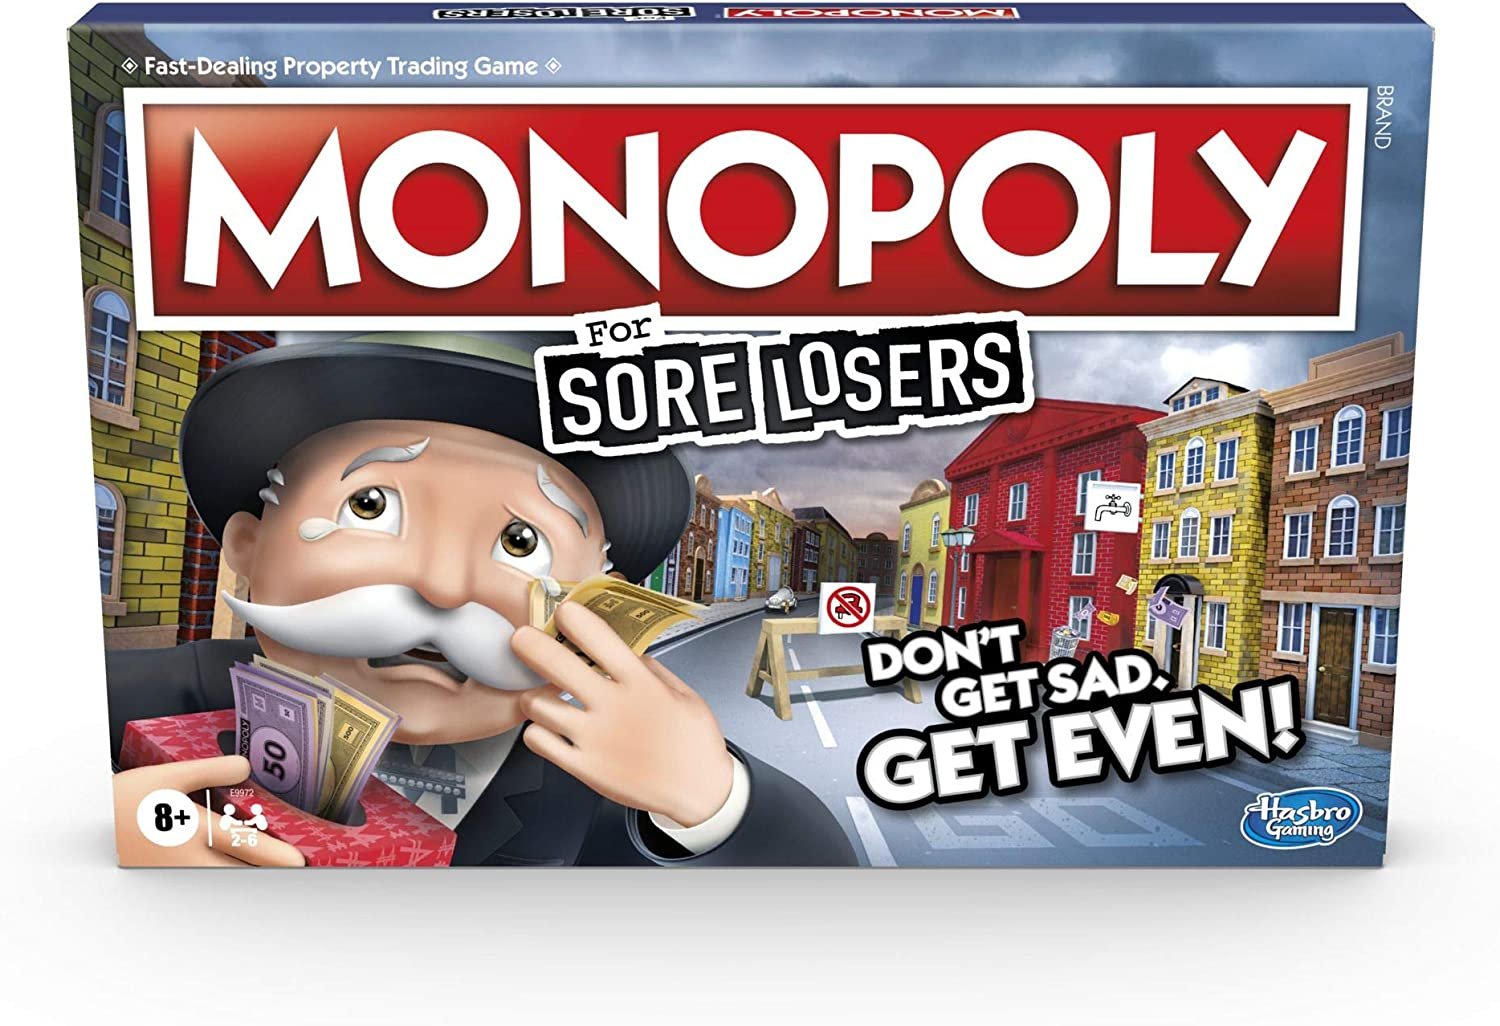 Hasbro Gaming Monopoly for Sore Losers Board Game for Ages 8 and Up, The Game Where it Pays to Lose